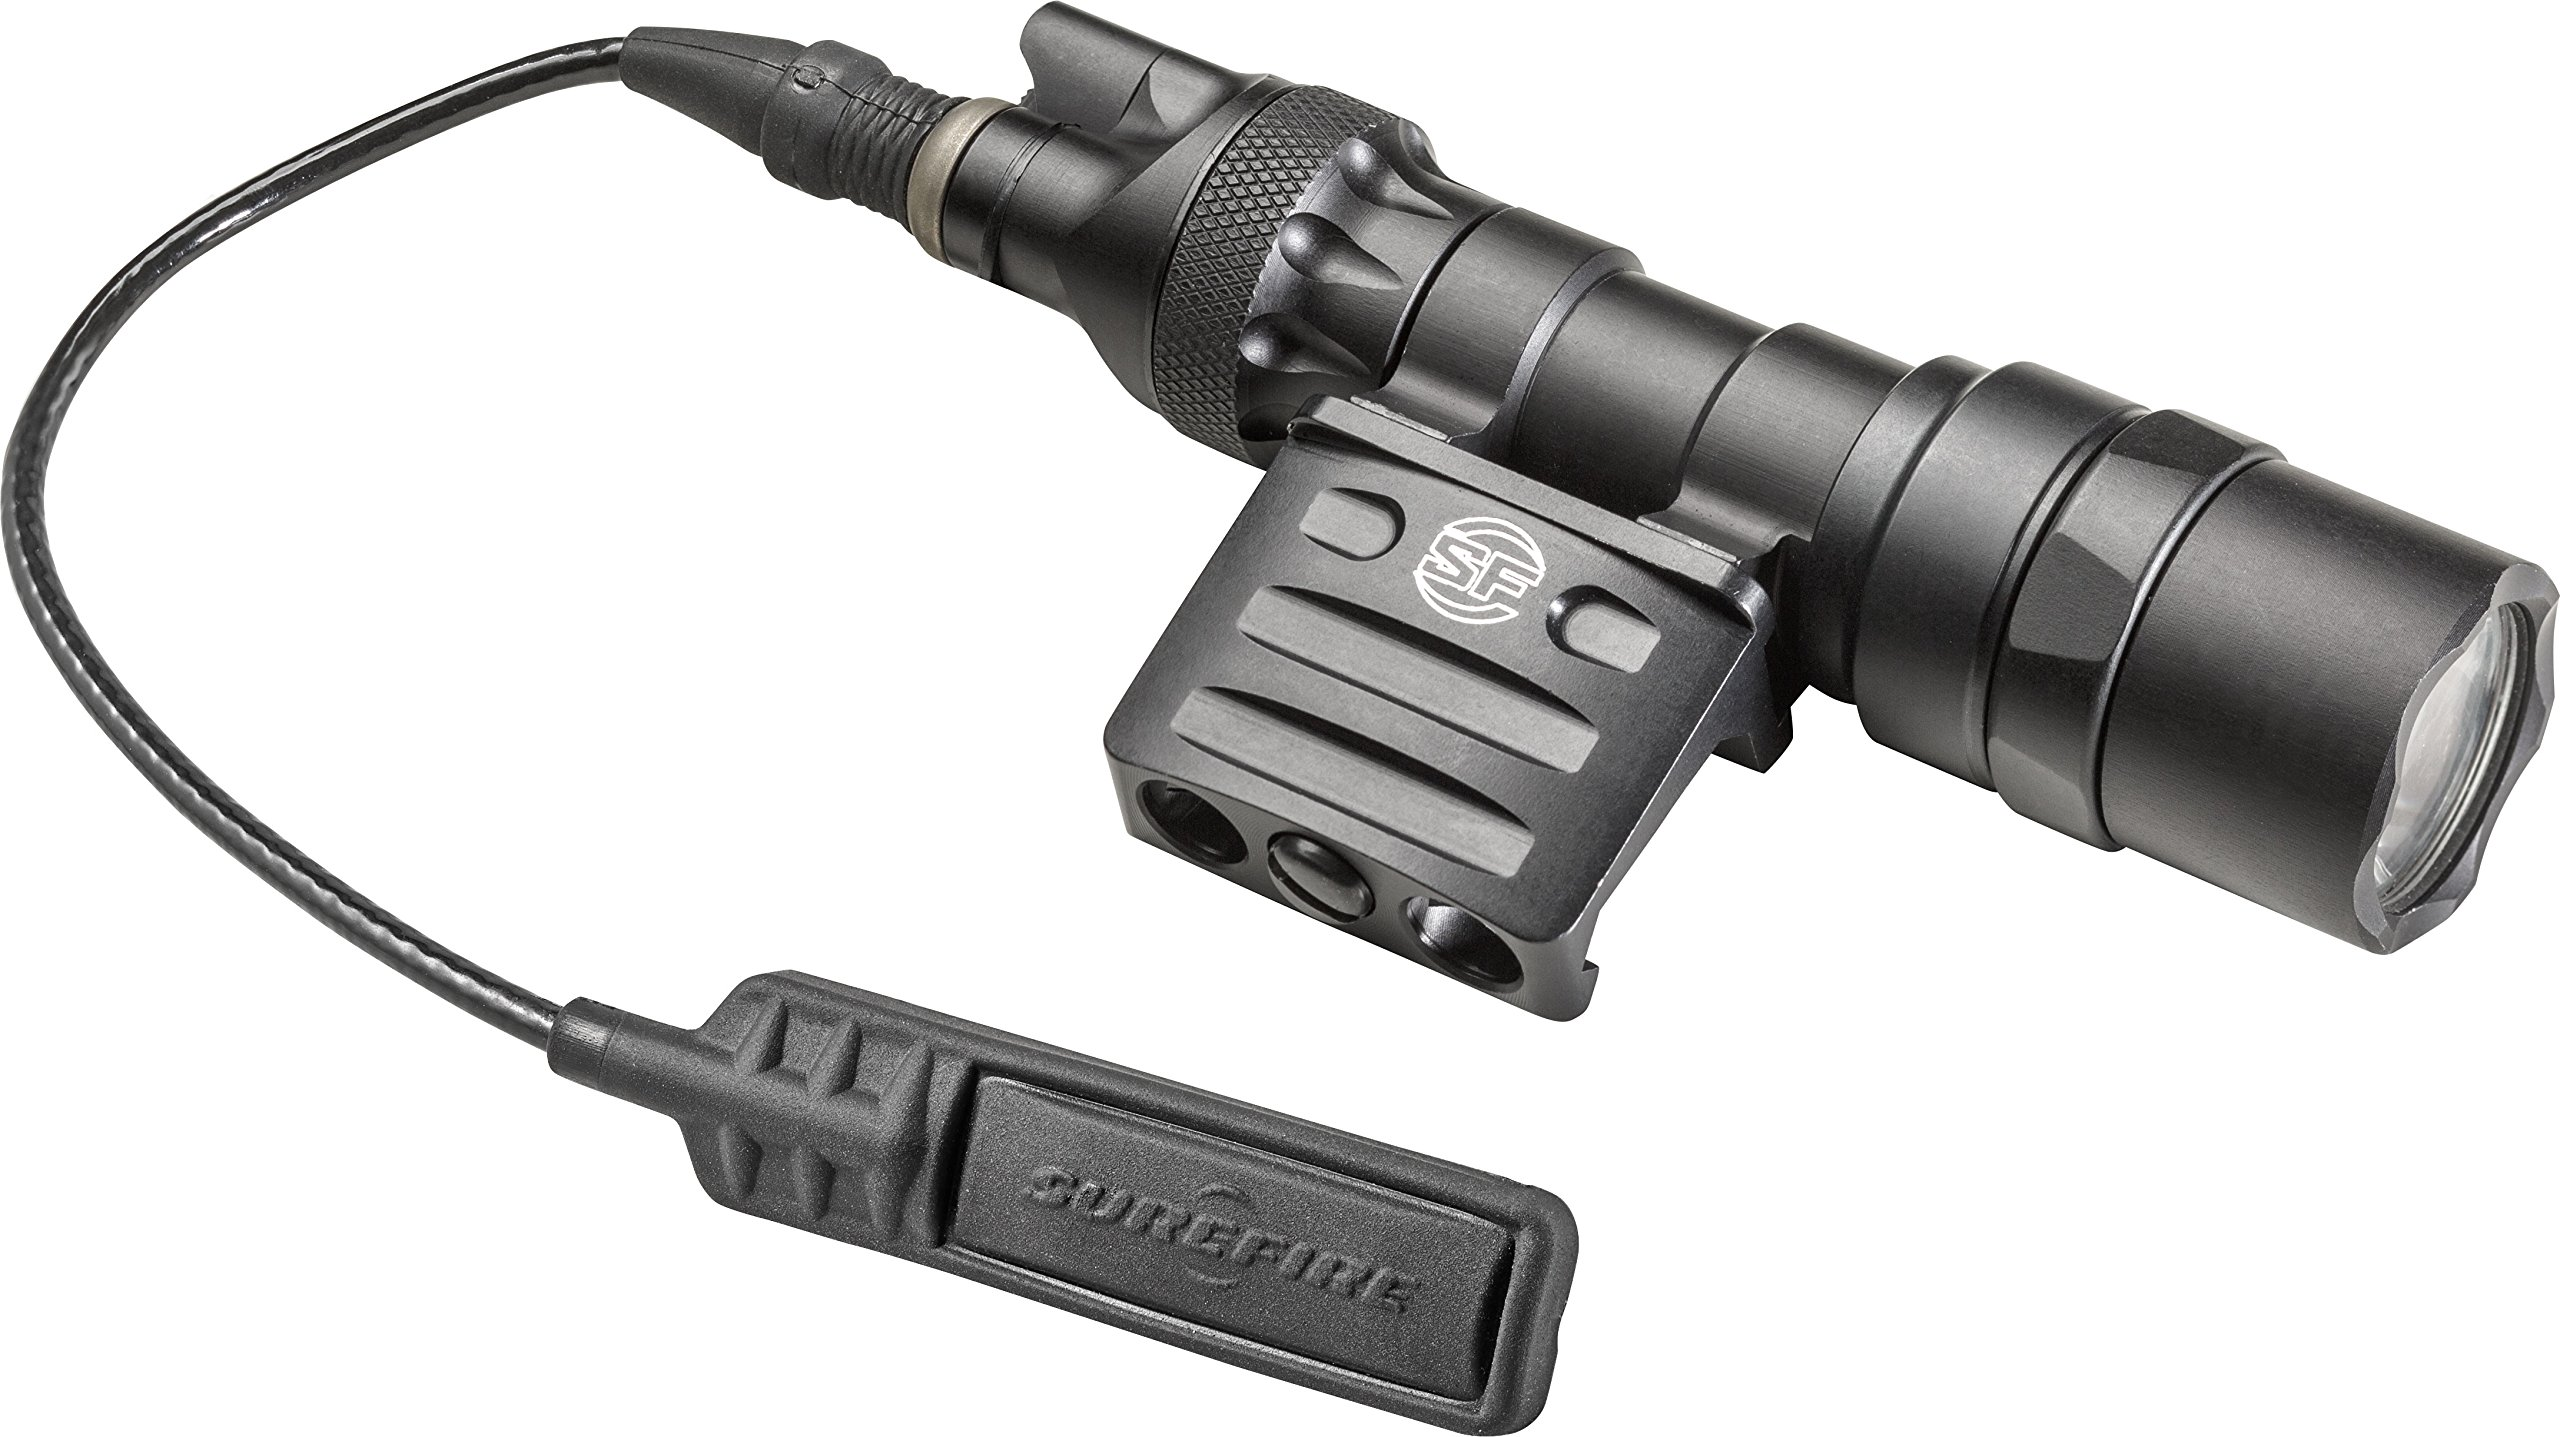 SureFire M312C Compact Scout Light with RM45 Low Profile Mount & DS07 Switch by SureFire